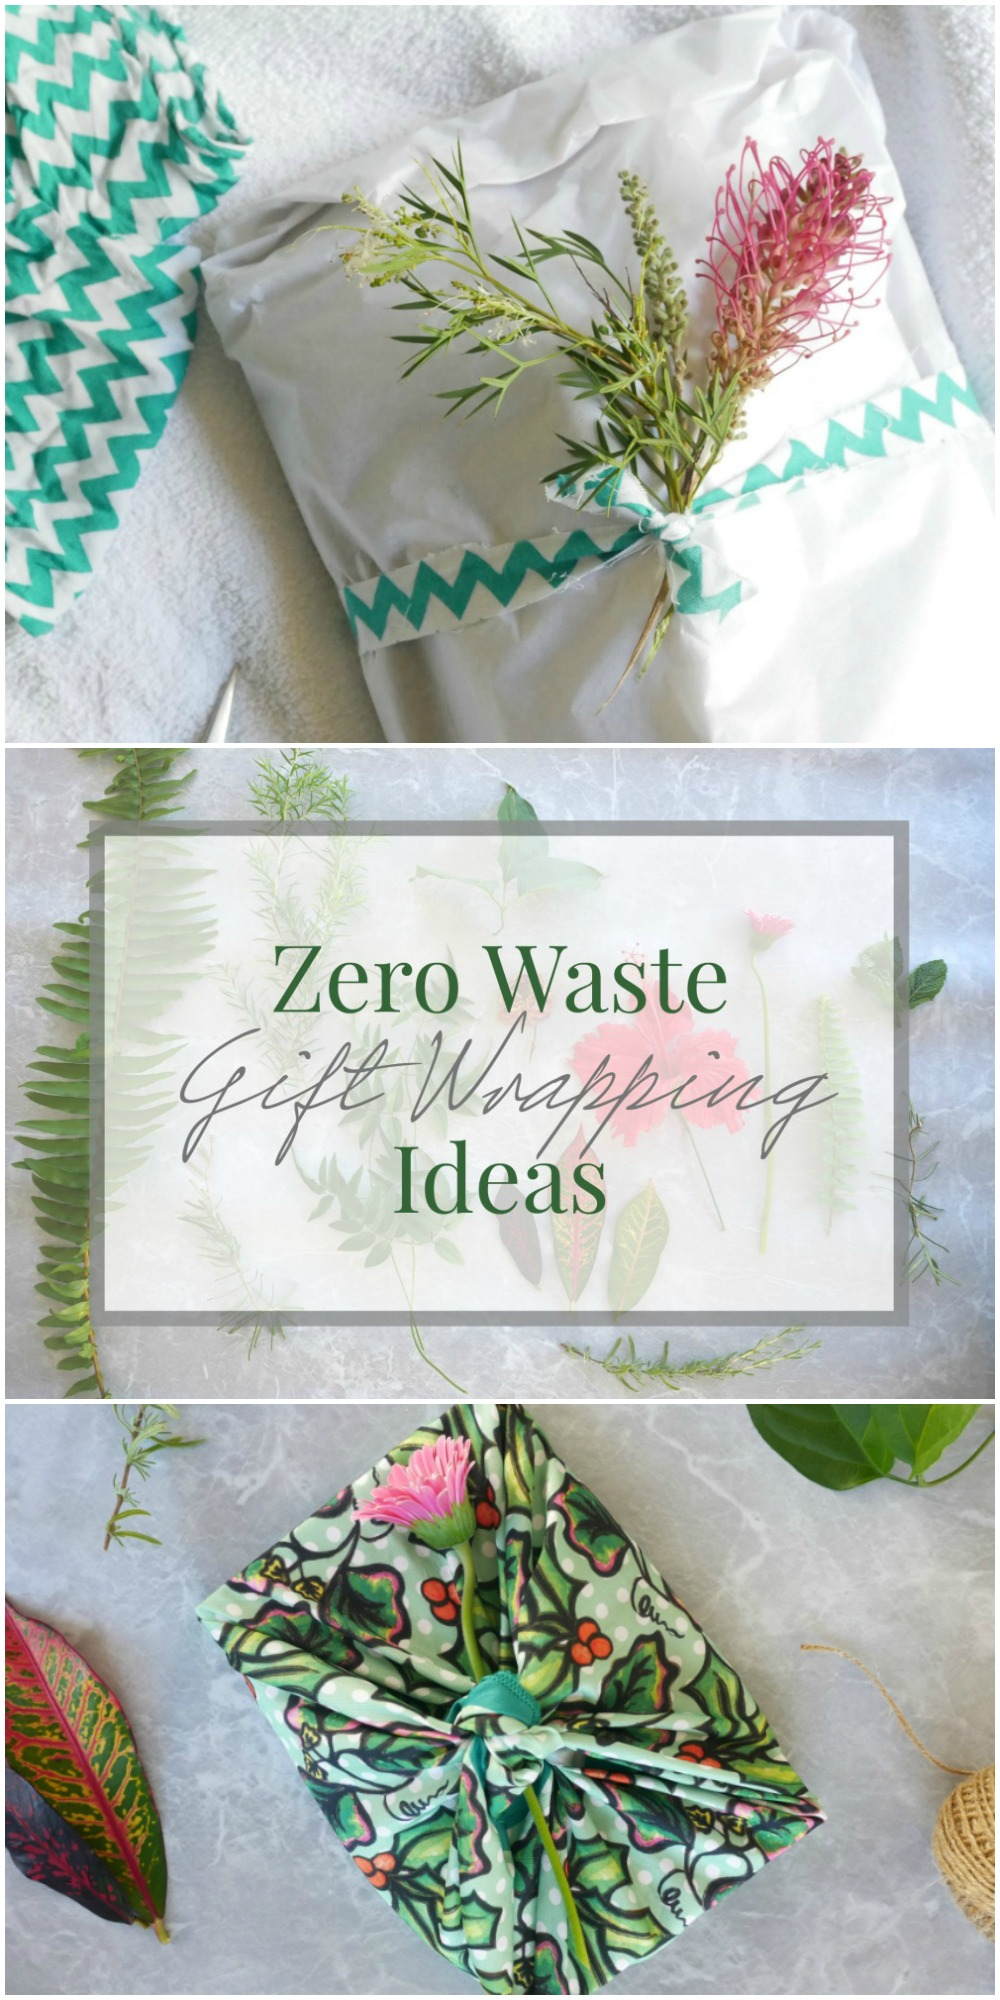 Zero Waste Gift Wrapping Tips